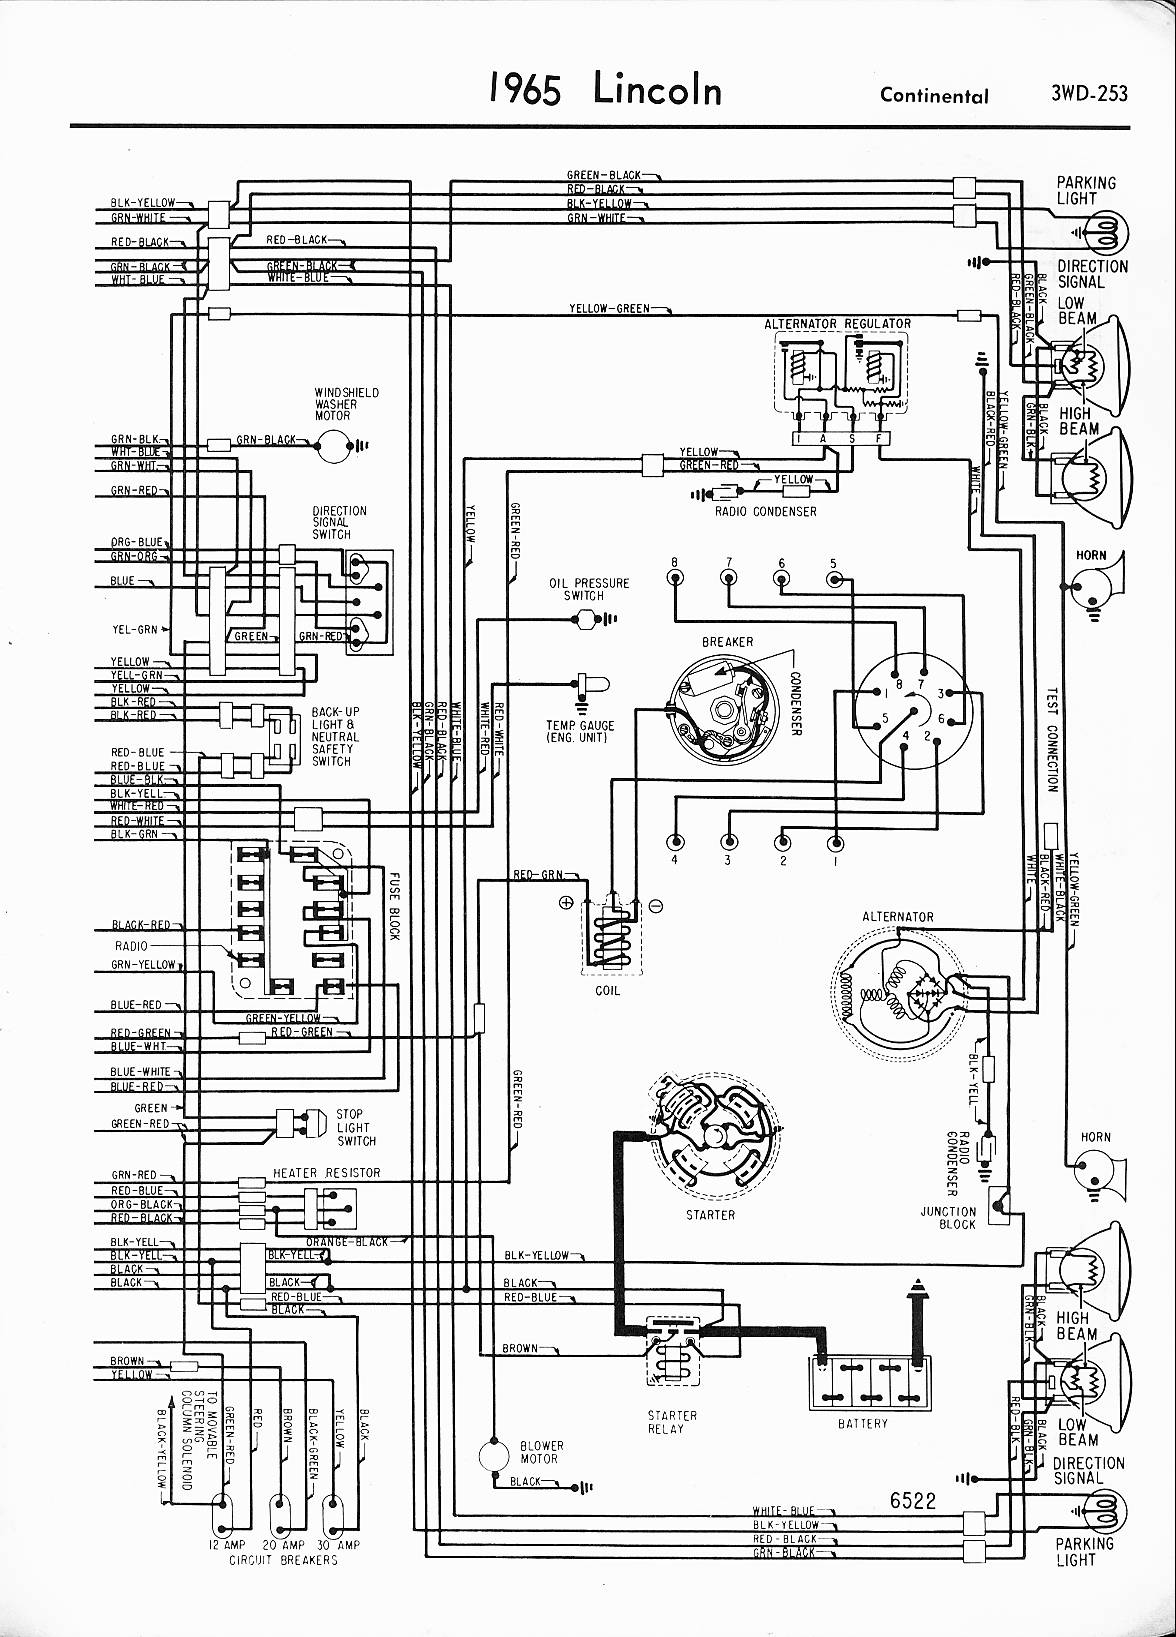 1998 1999 Lincoln Town Car Wiring Diagram Library Clarion Radio Diagrams 1957 1965 Rh Oldcarmanualproject Com Motor